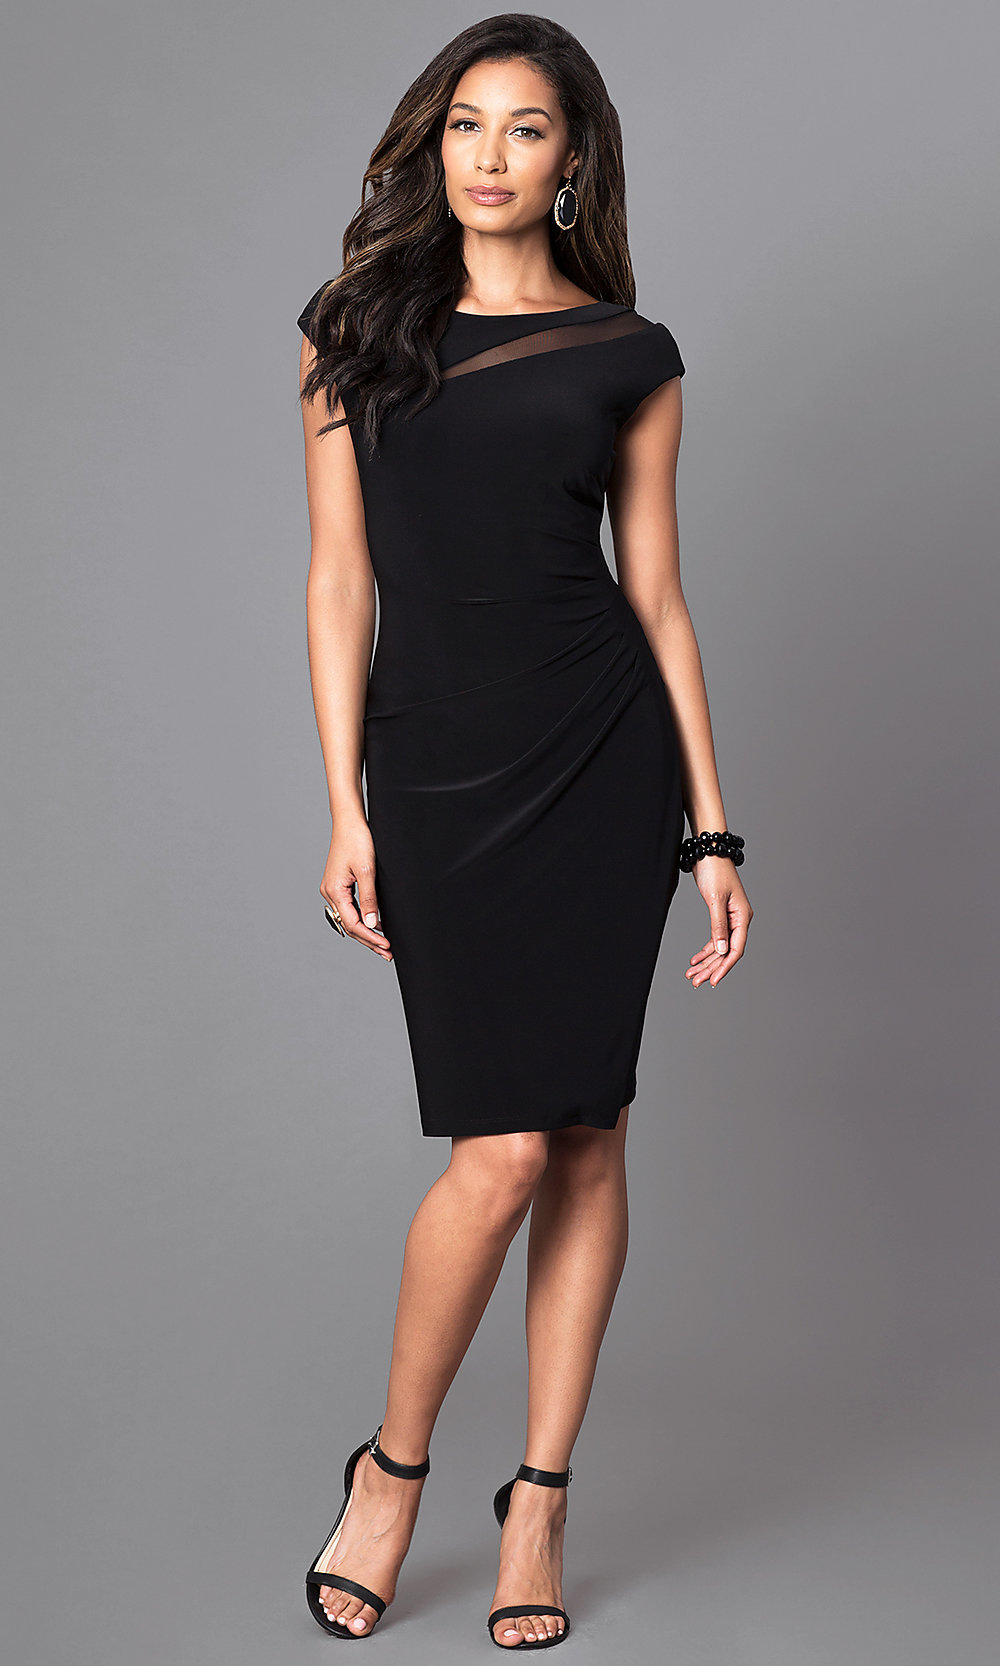 capsleeve kneelength black party dress  promgirl